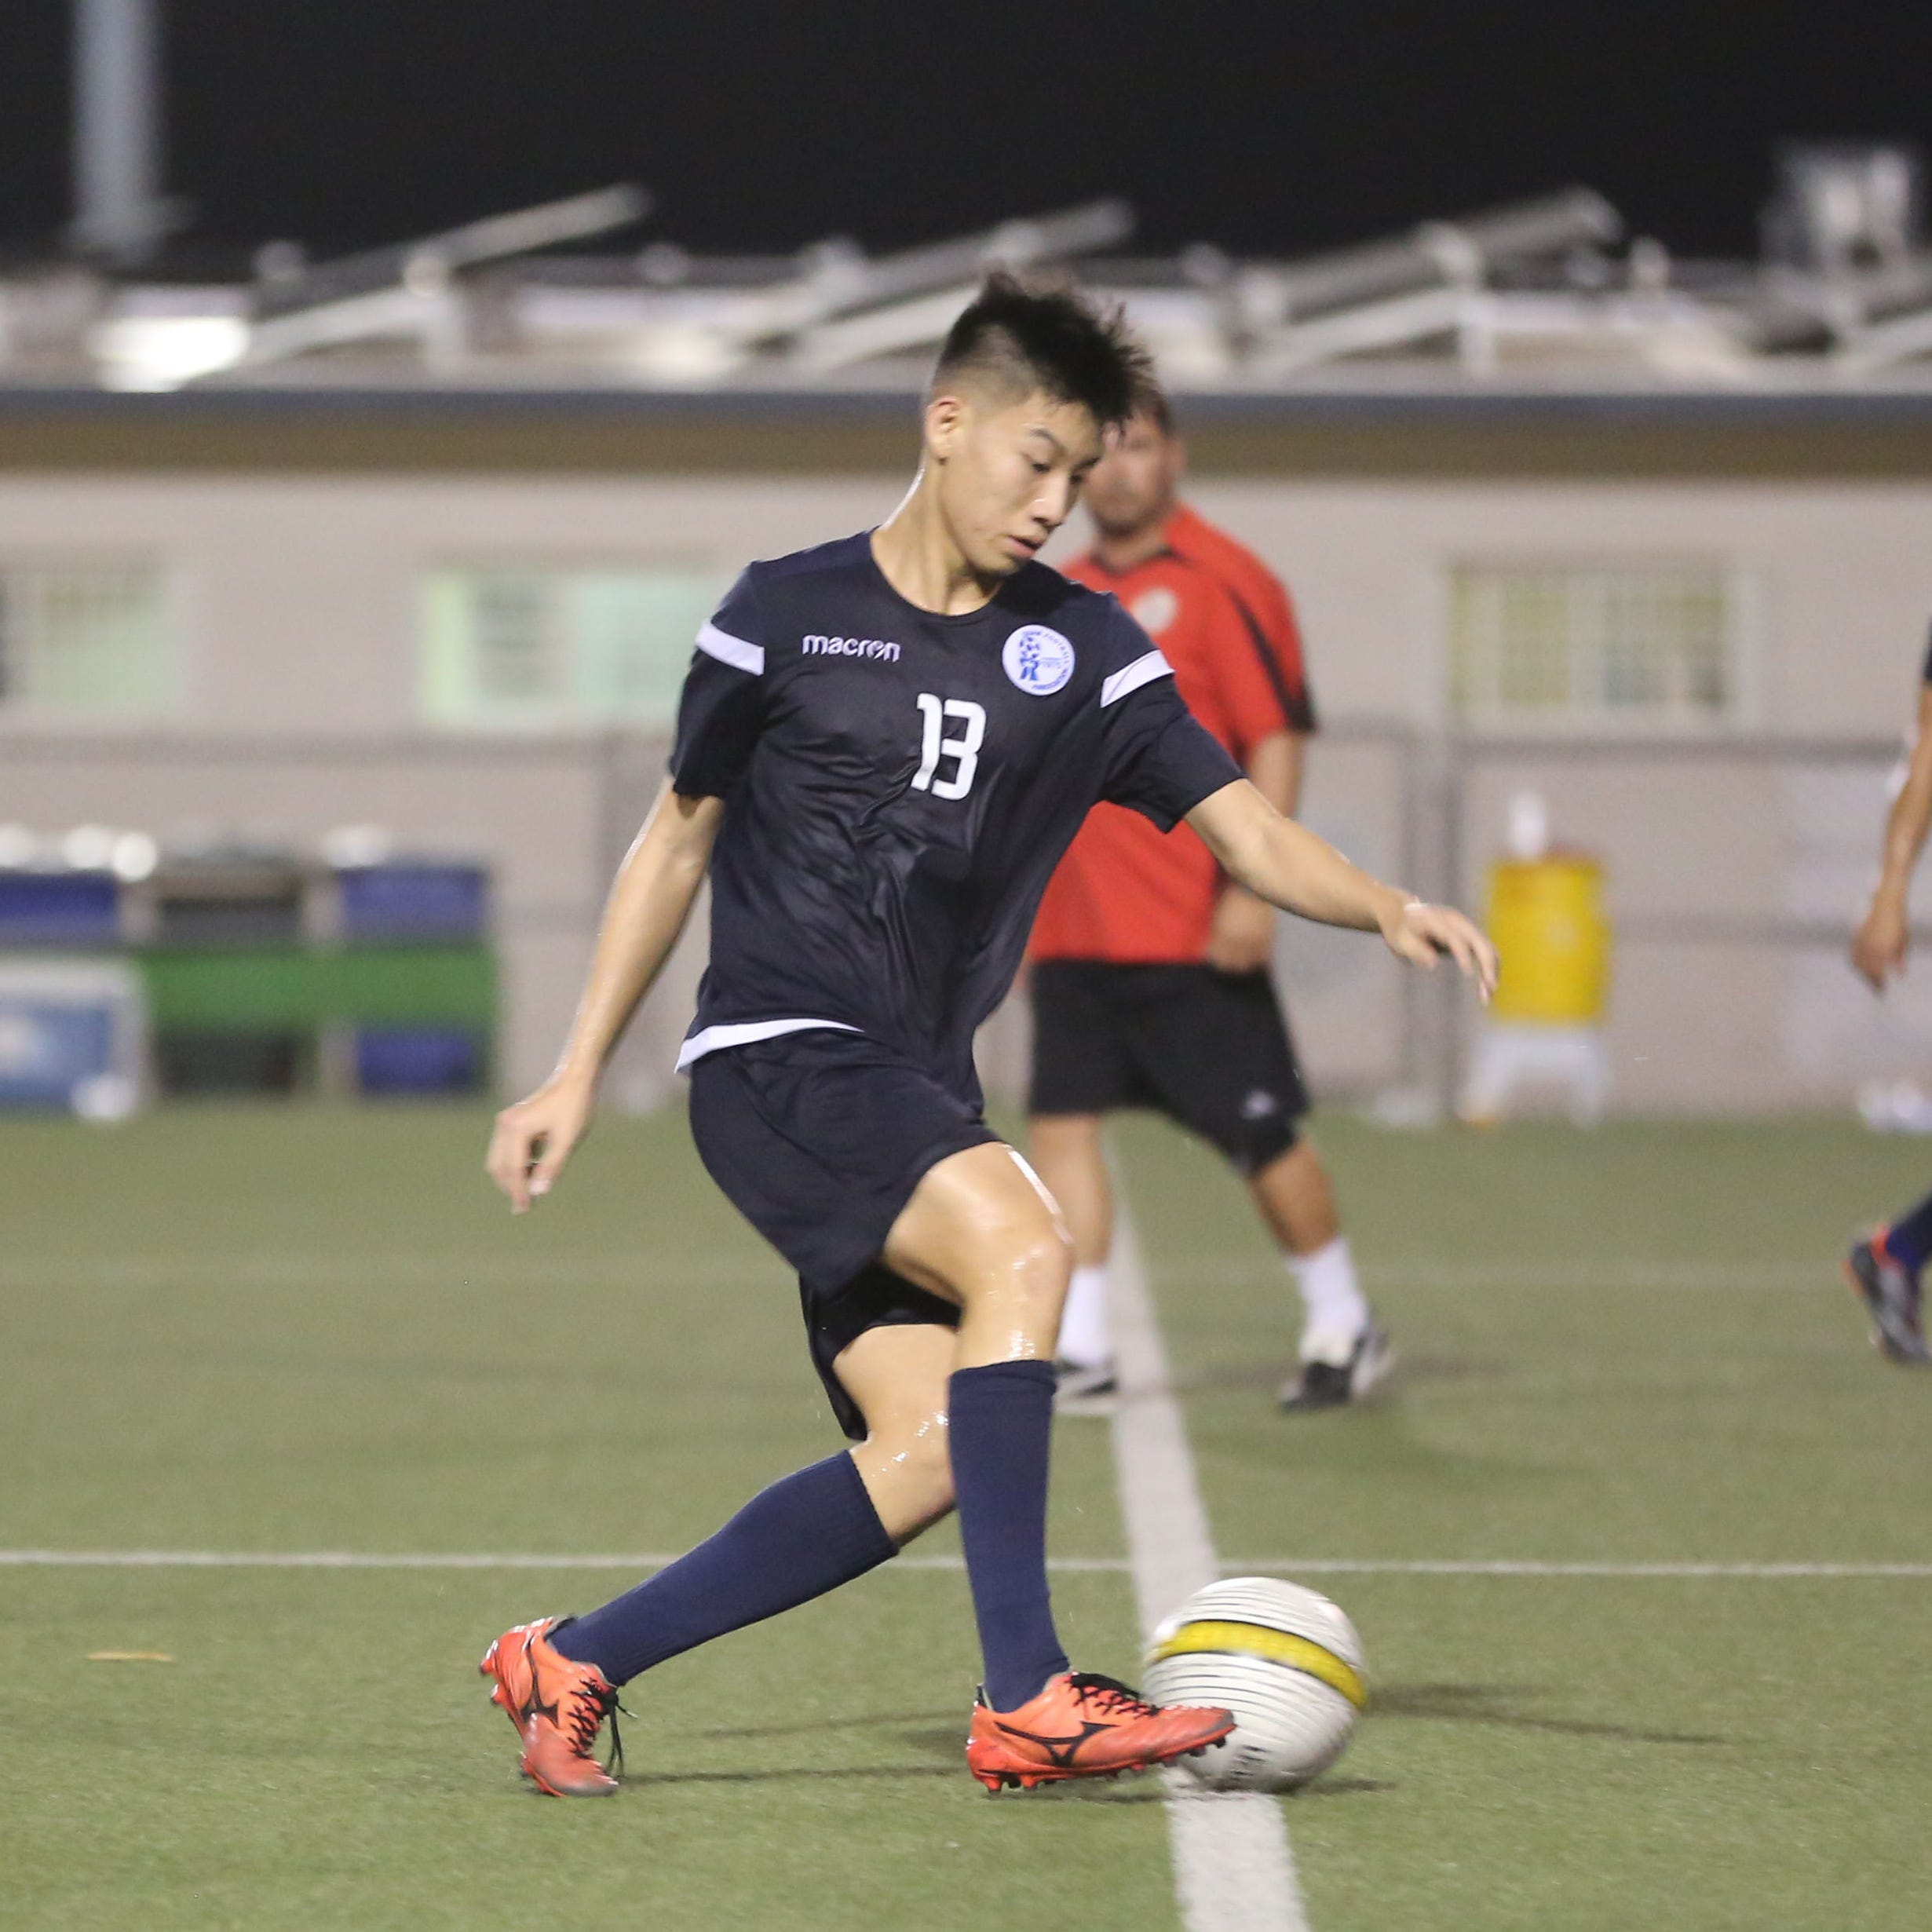 Teen called up to play for Matao